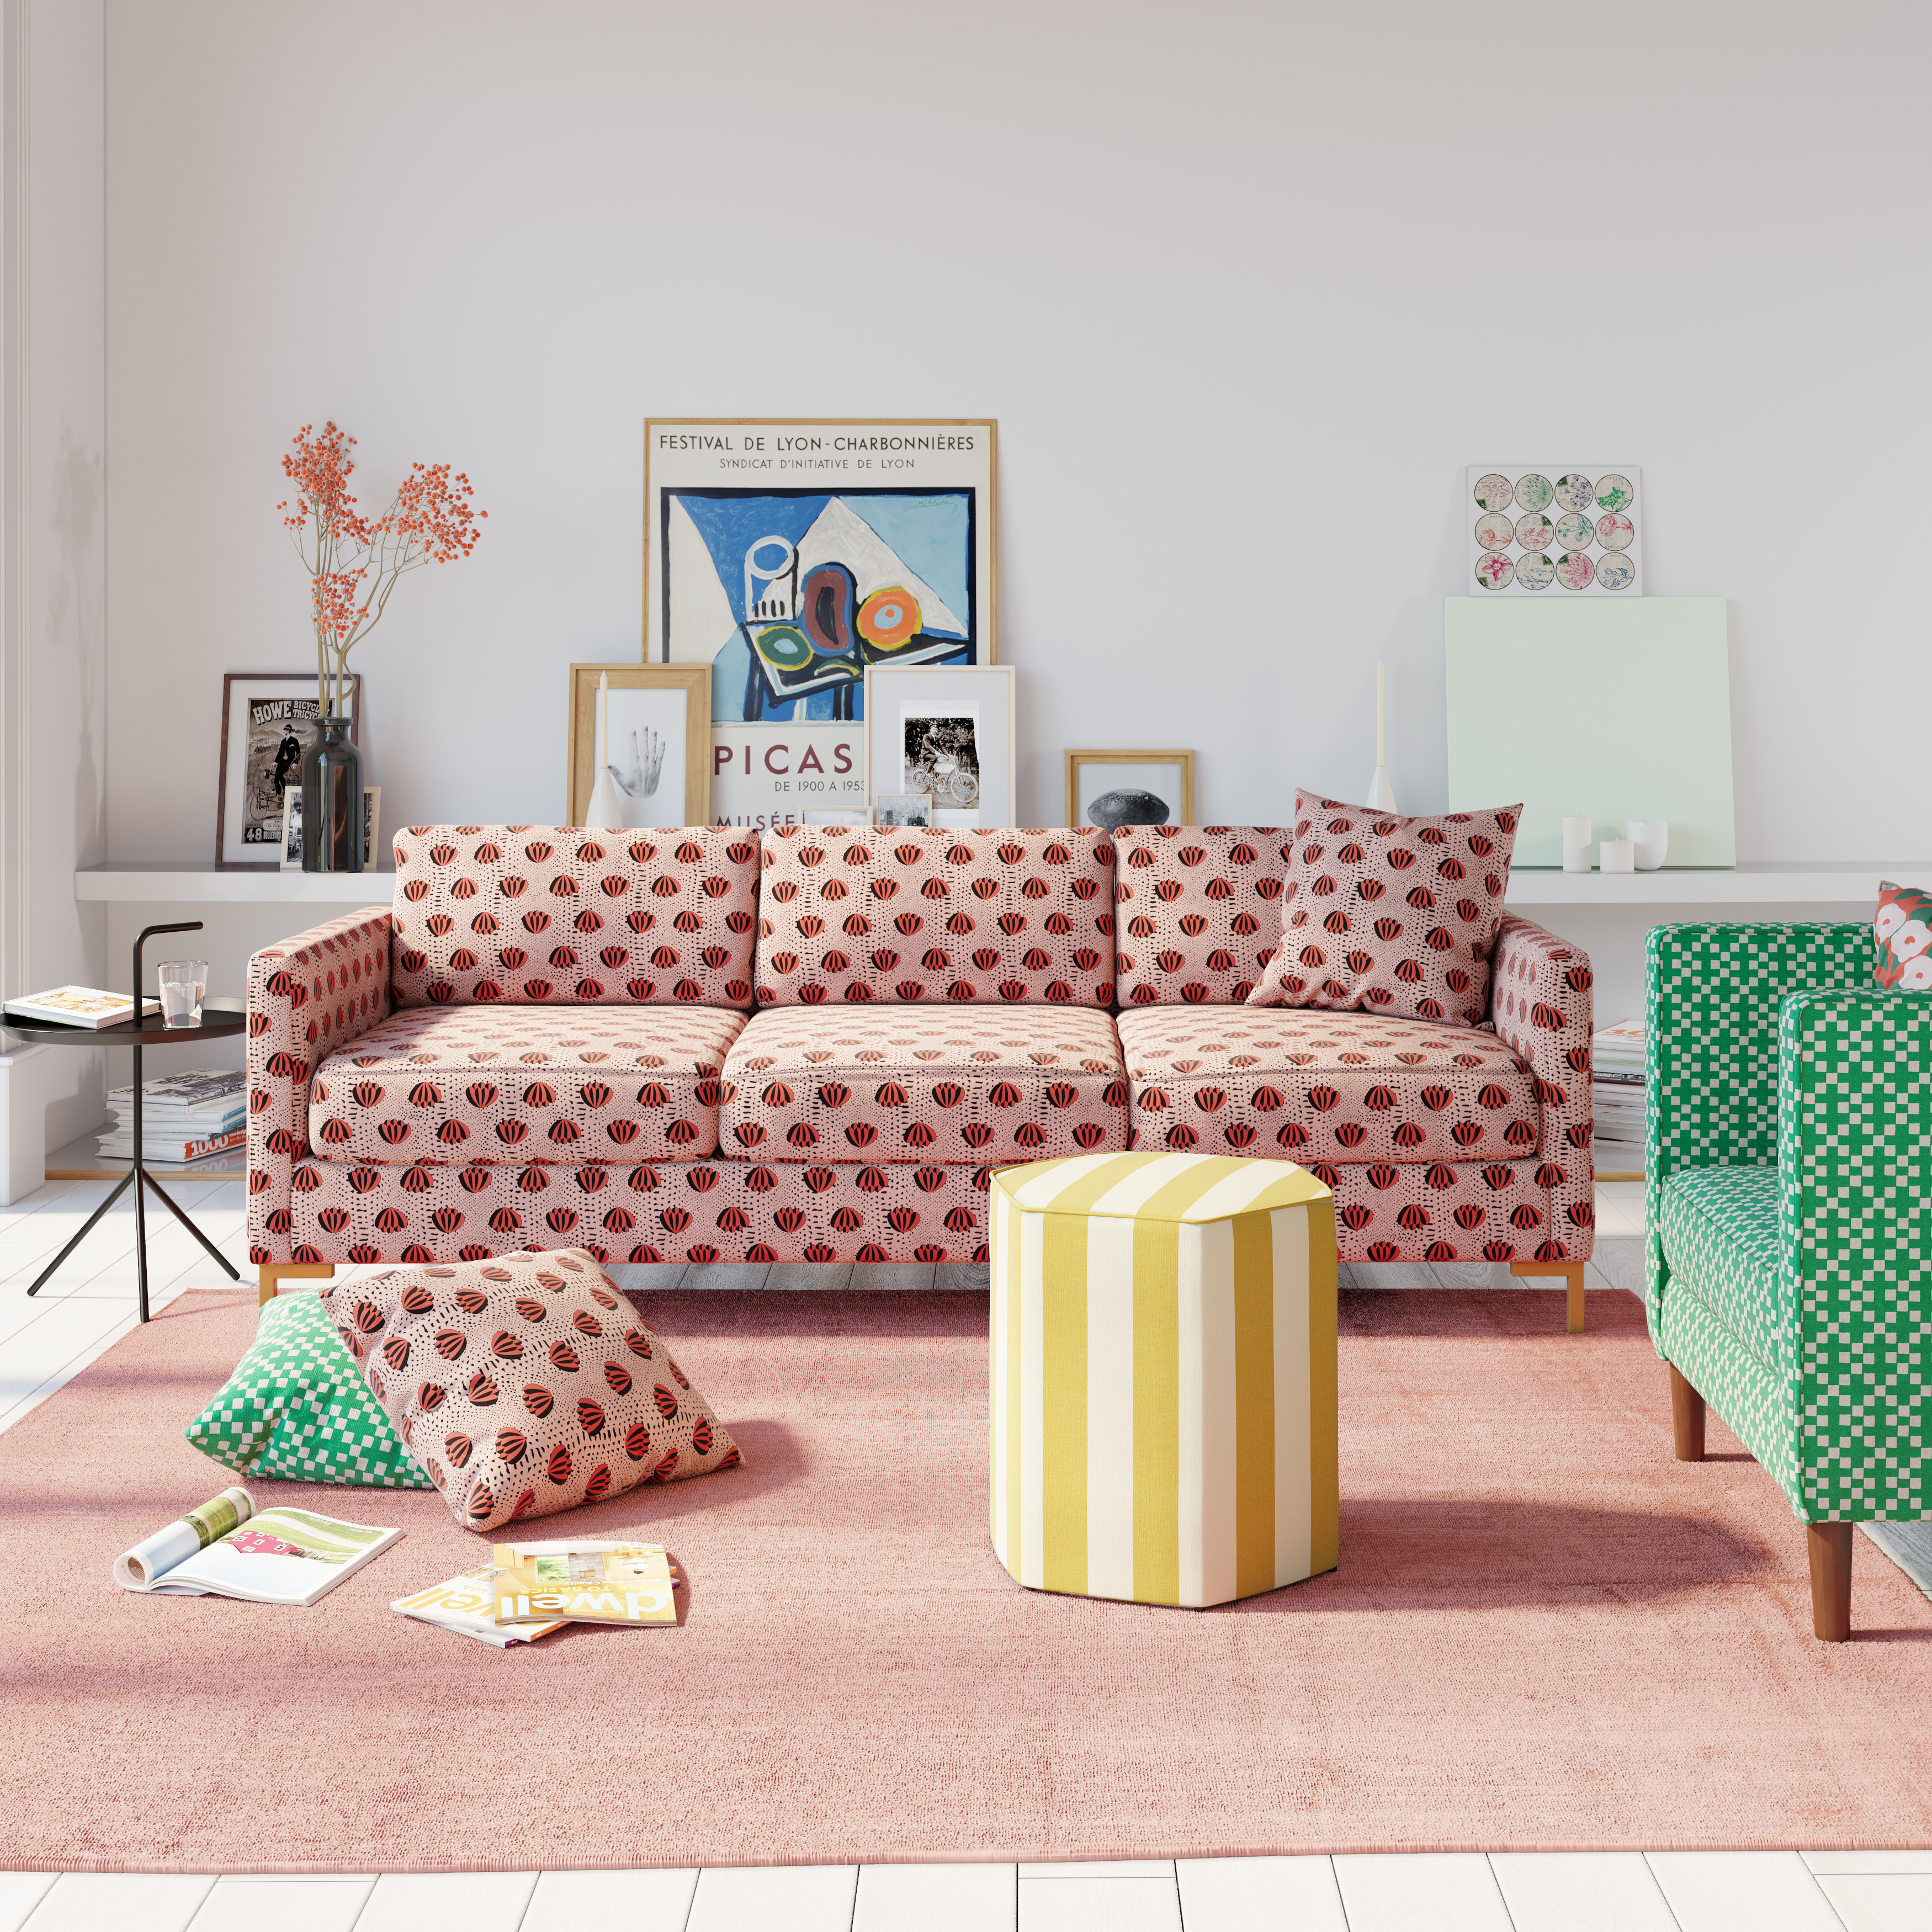 Pink floral-patterned sofa in a living room, next to matching pillow, and yellow-and-white striped ottoman.